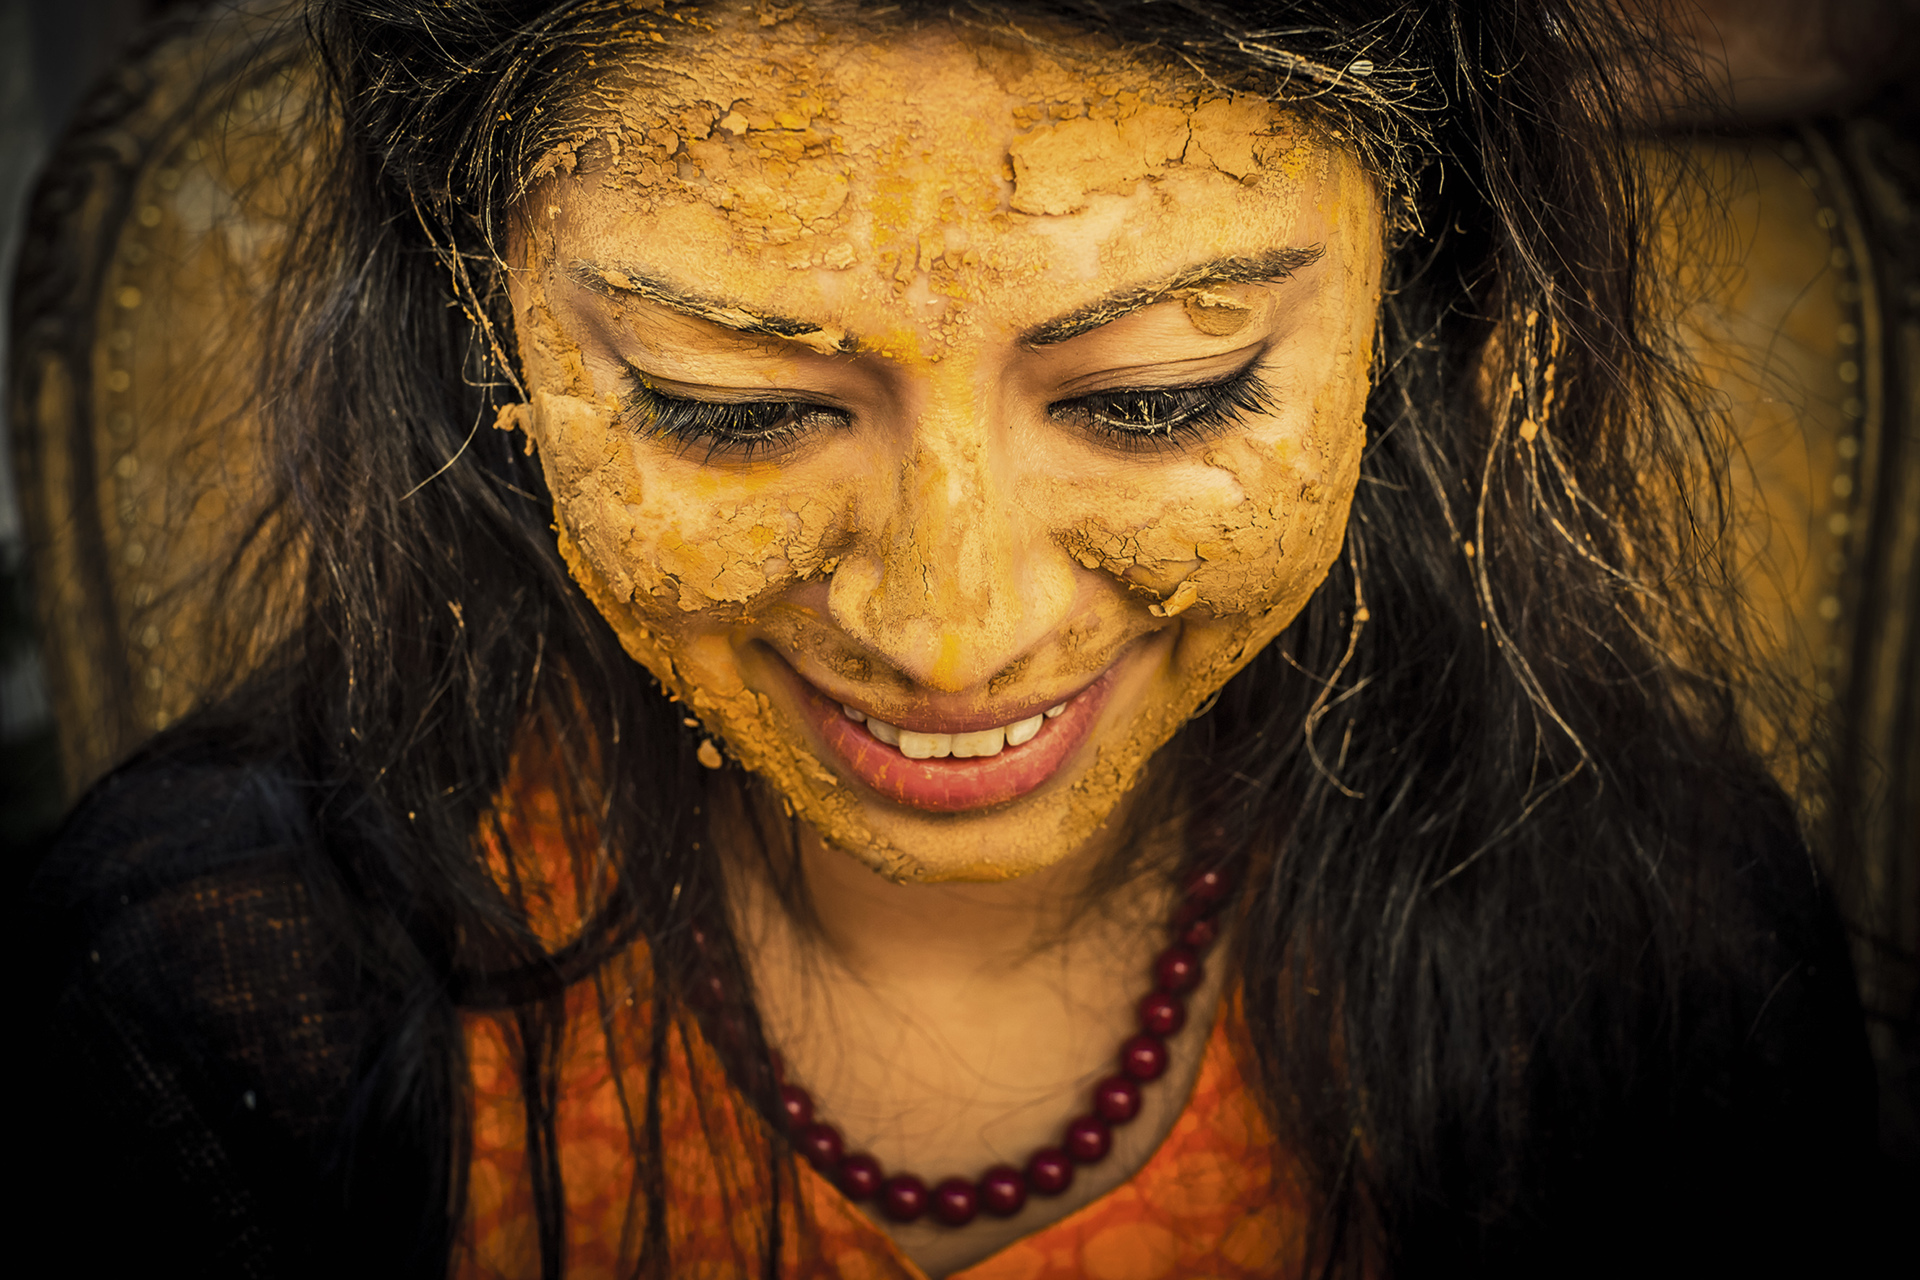 Indian woman caked with saffron - photo by Sephi Bergerson